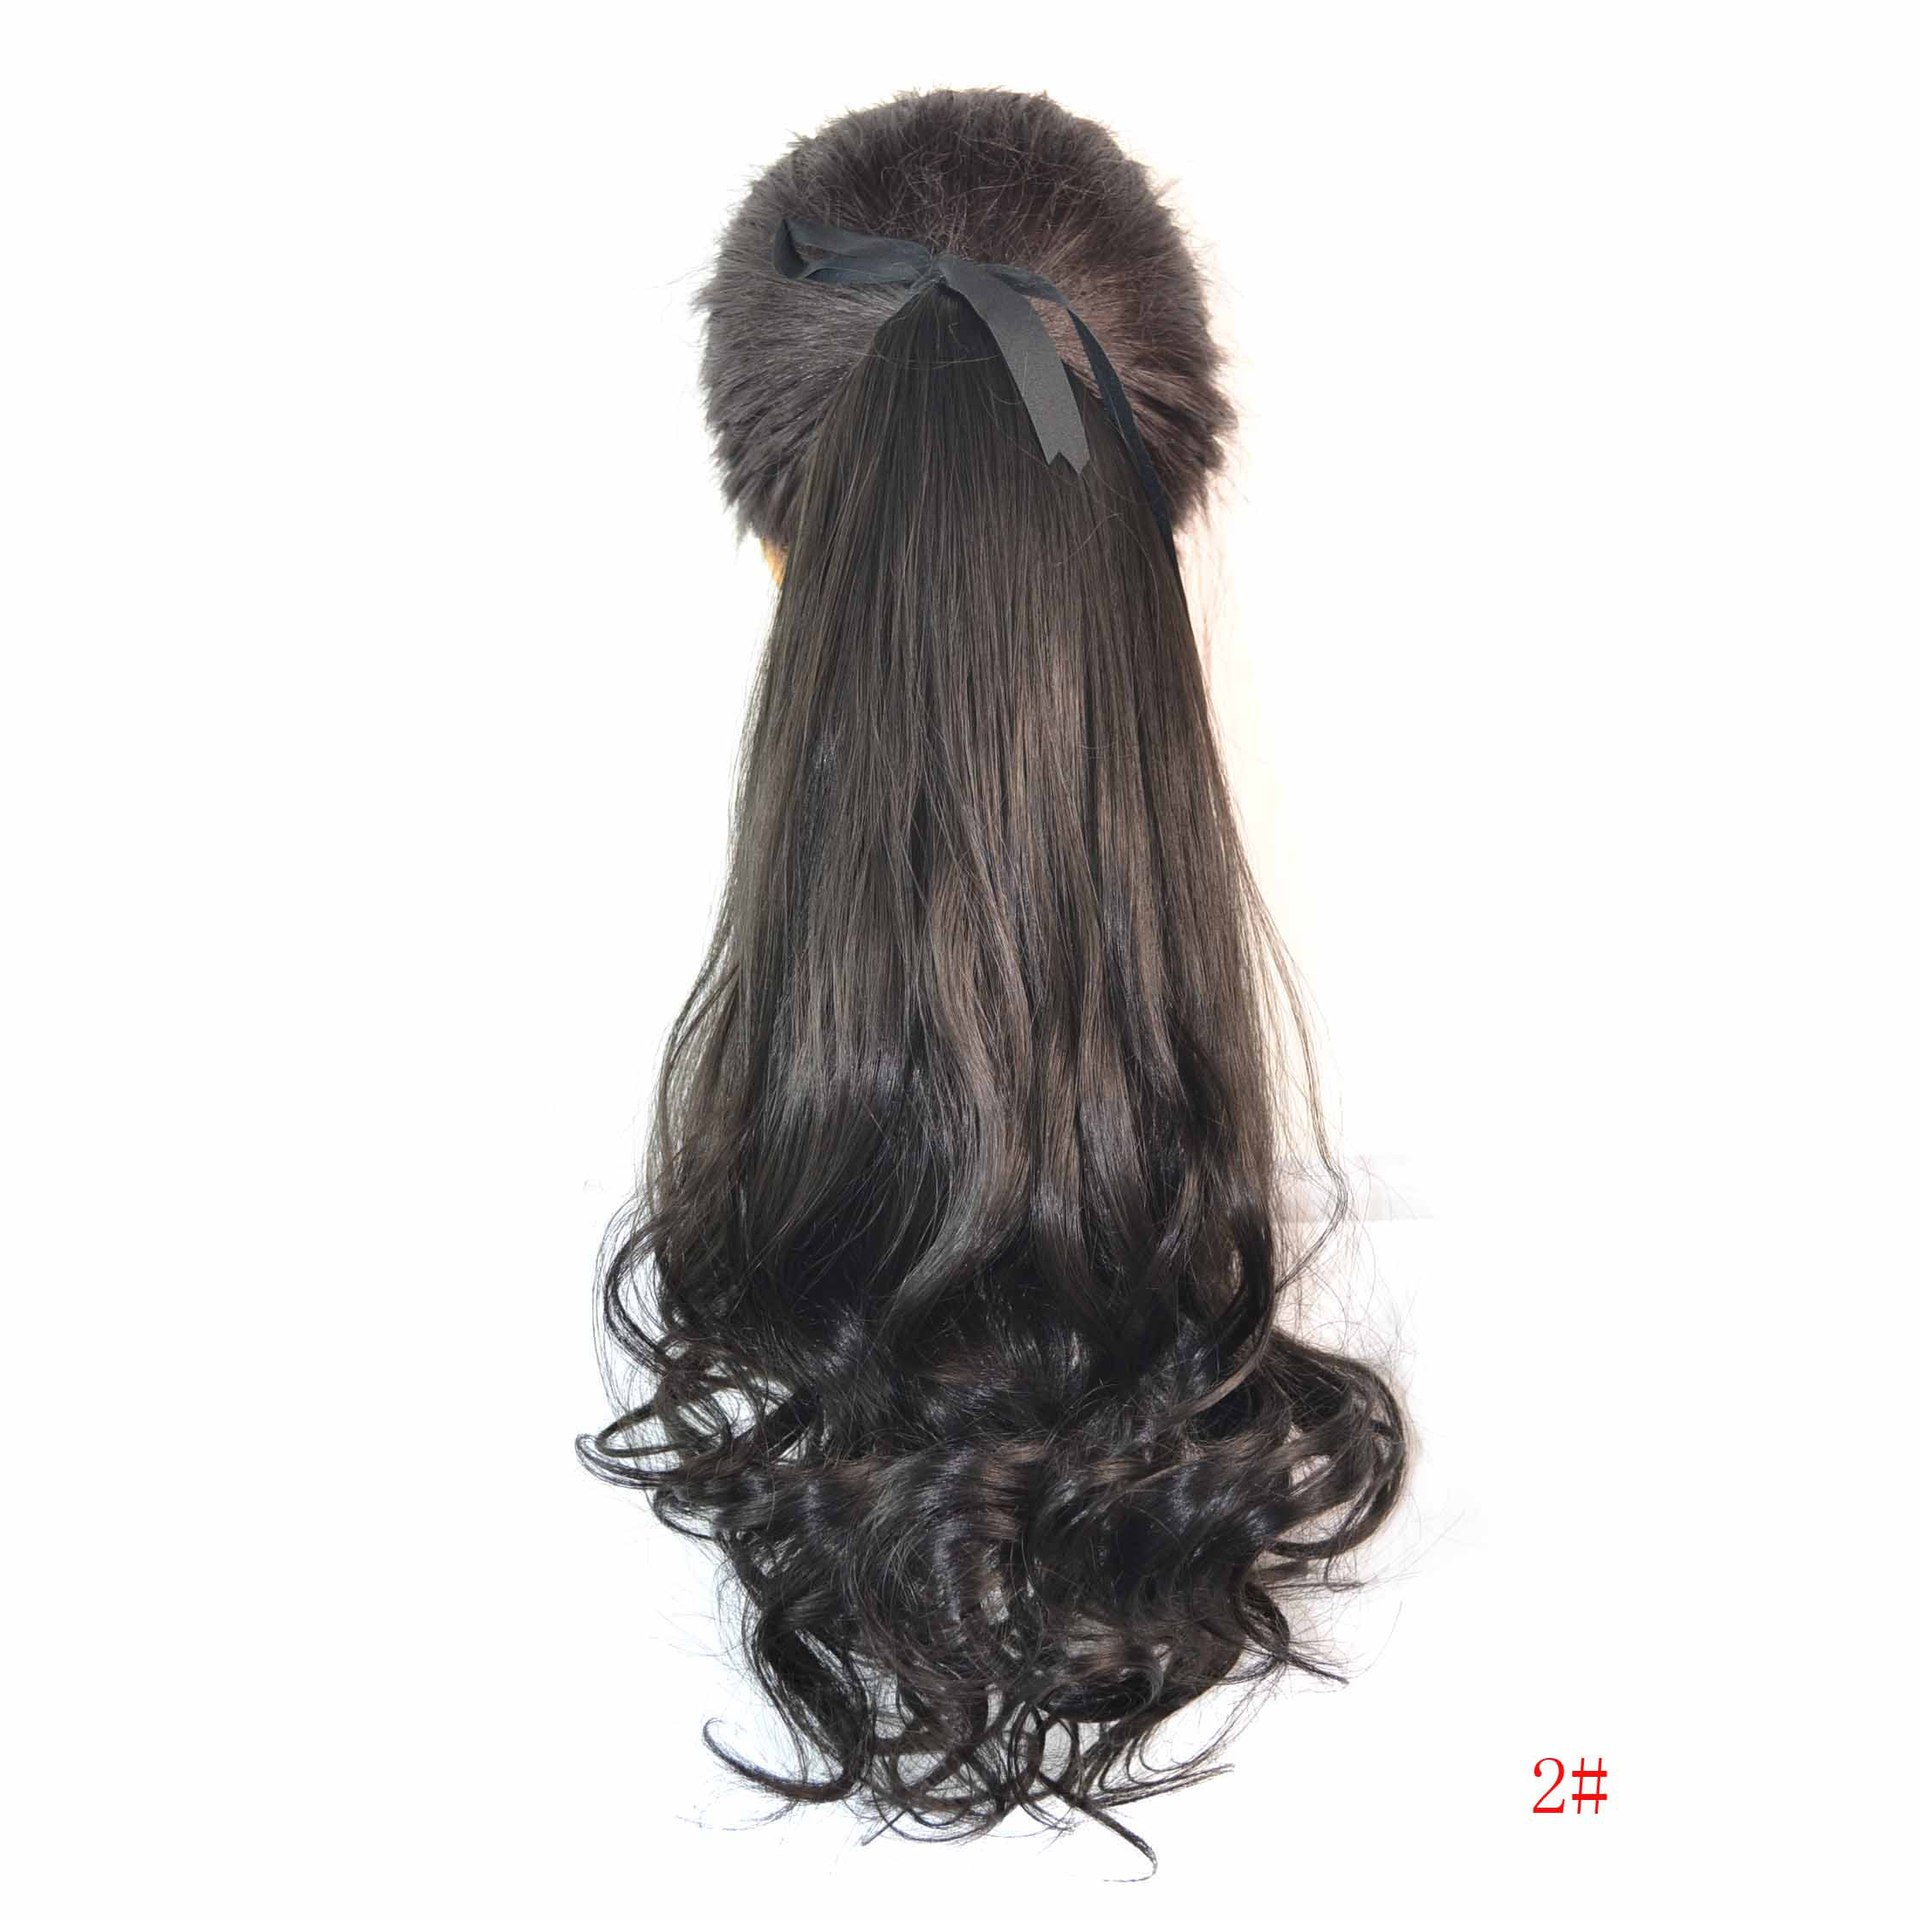 Hot sale hair accessories 100g 45cm hair jewelry extension synthetic curly hairwear for womens fashion ponytails